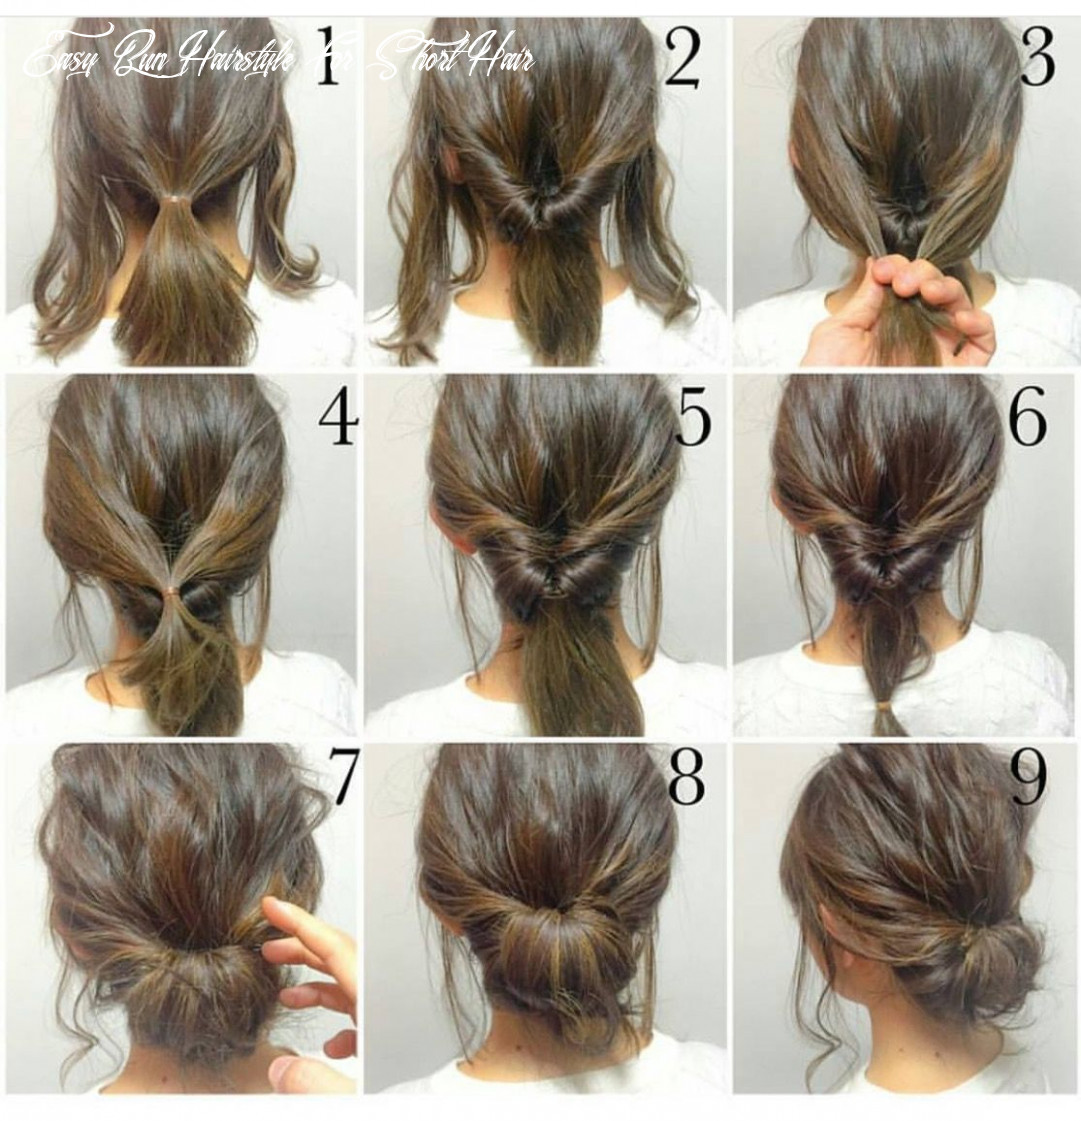 Pin by beth martin on beauty buzz   work hairstyles, short hair